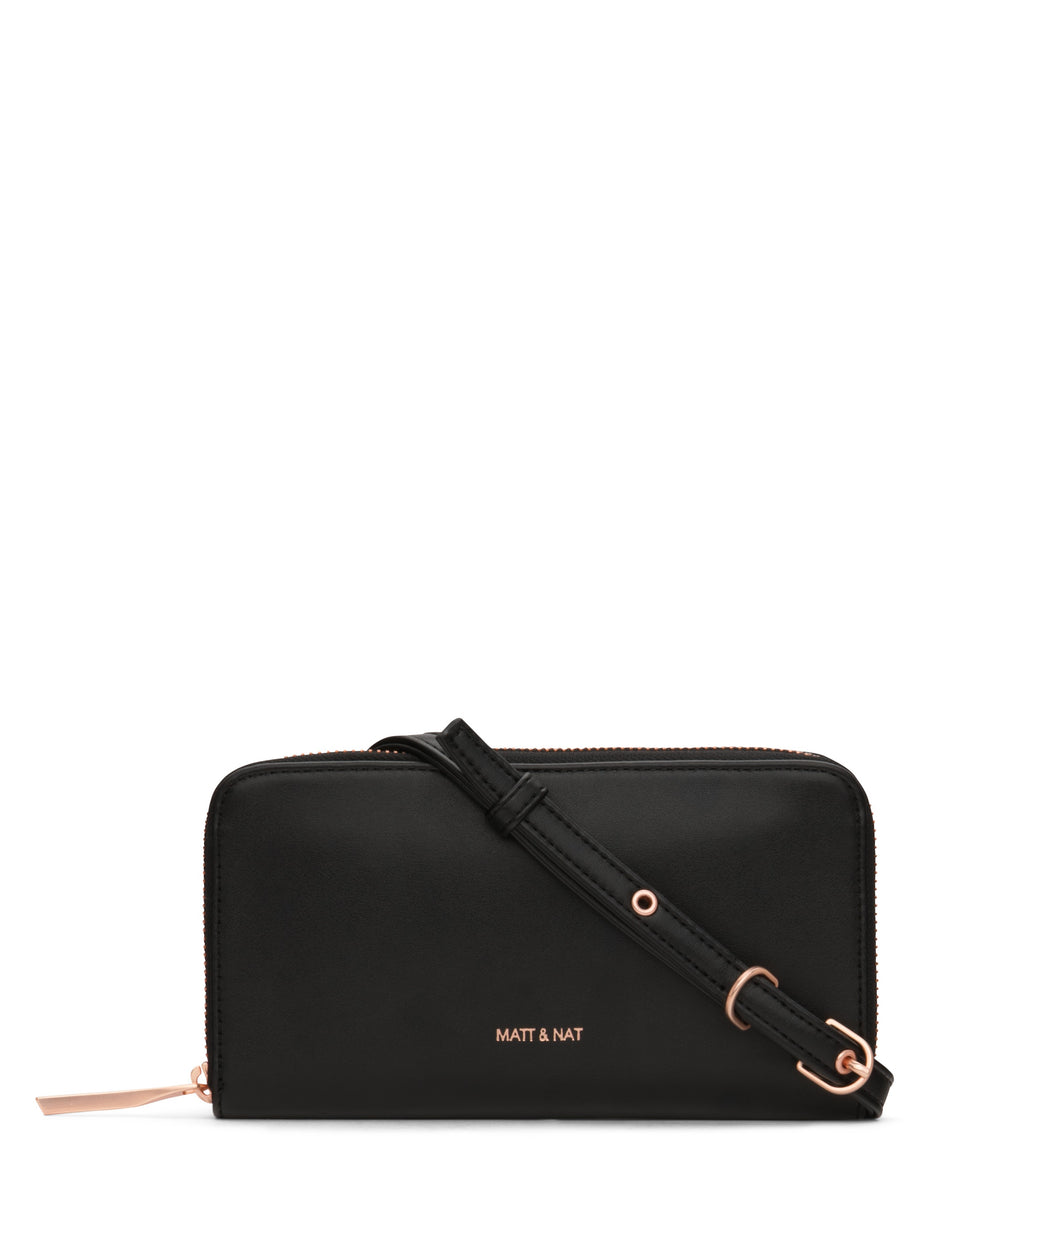 INVER Crossbody Wallet - Black Rose Gold